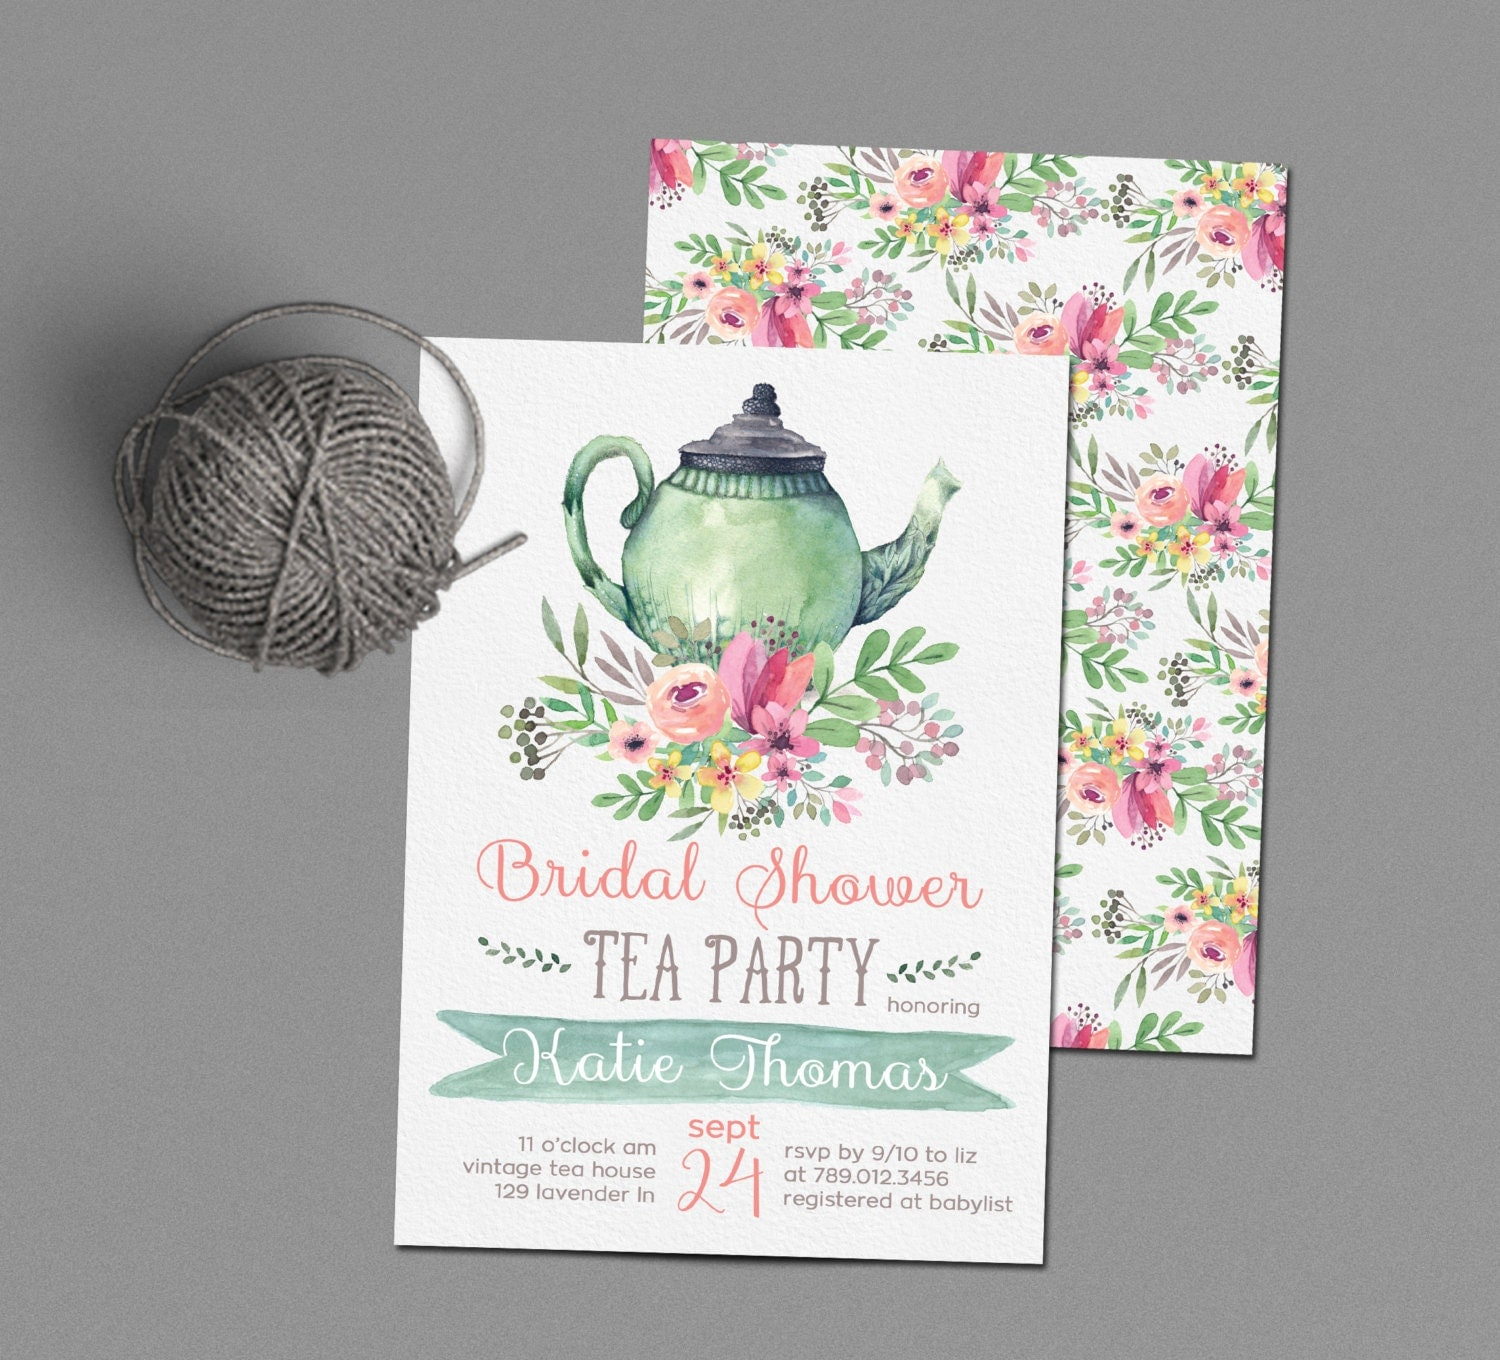 Tea party bridal shower invitations wedding shower invite - Bridal shower invitations ...